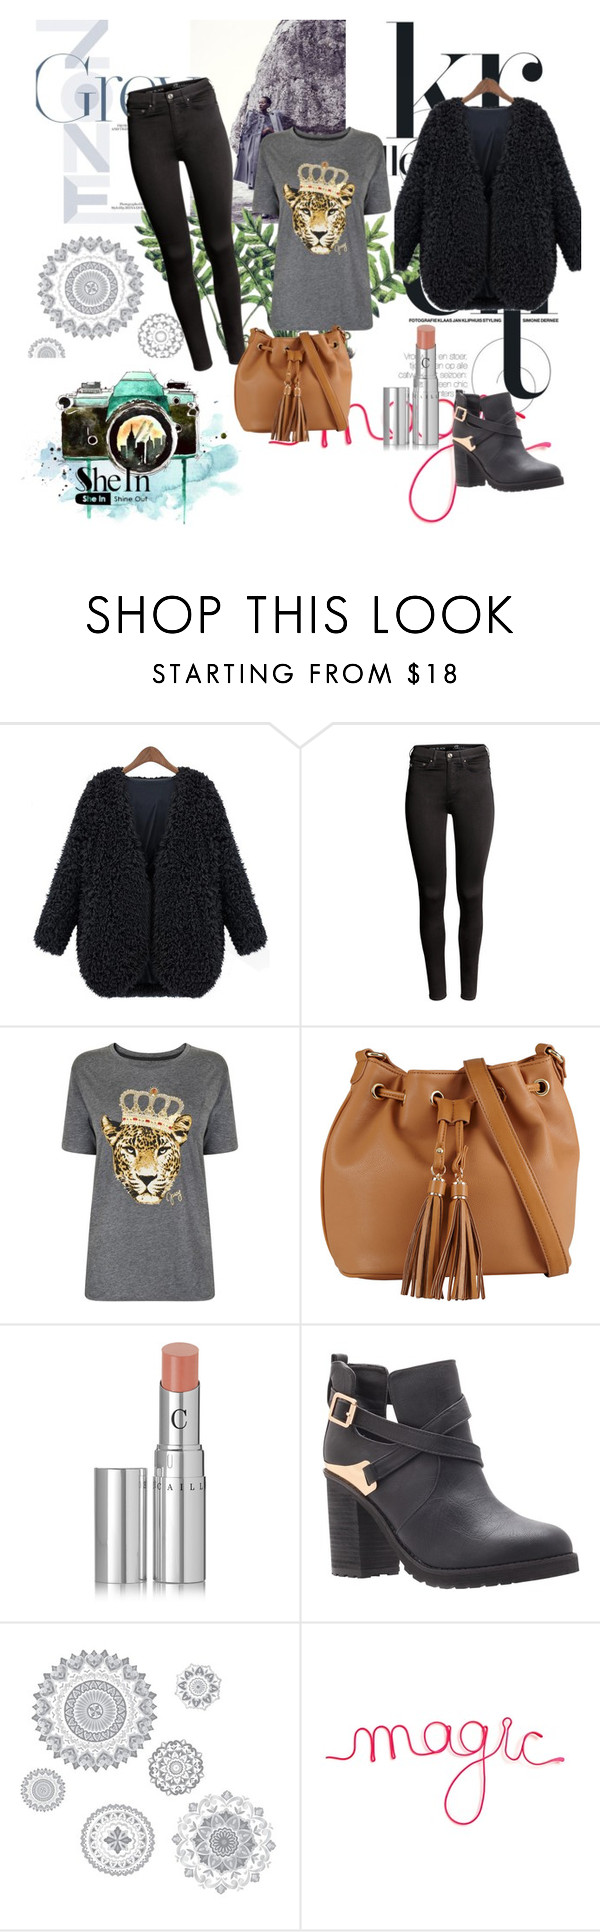 """""""Black V Neck Coat Shein"""" by dudavagsantos ❤ liked on Polyvore featuring H&M, Juicy Couture, ALDO, Chantecaille, Miss KG, WallPops and shein"""